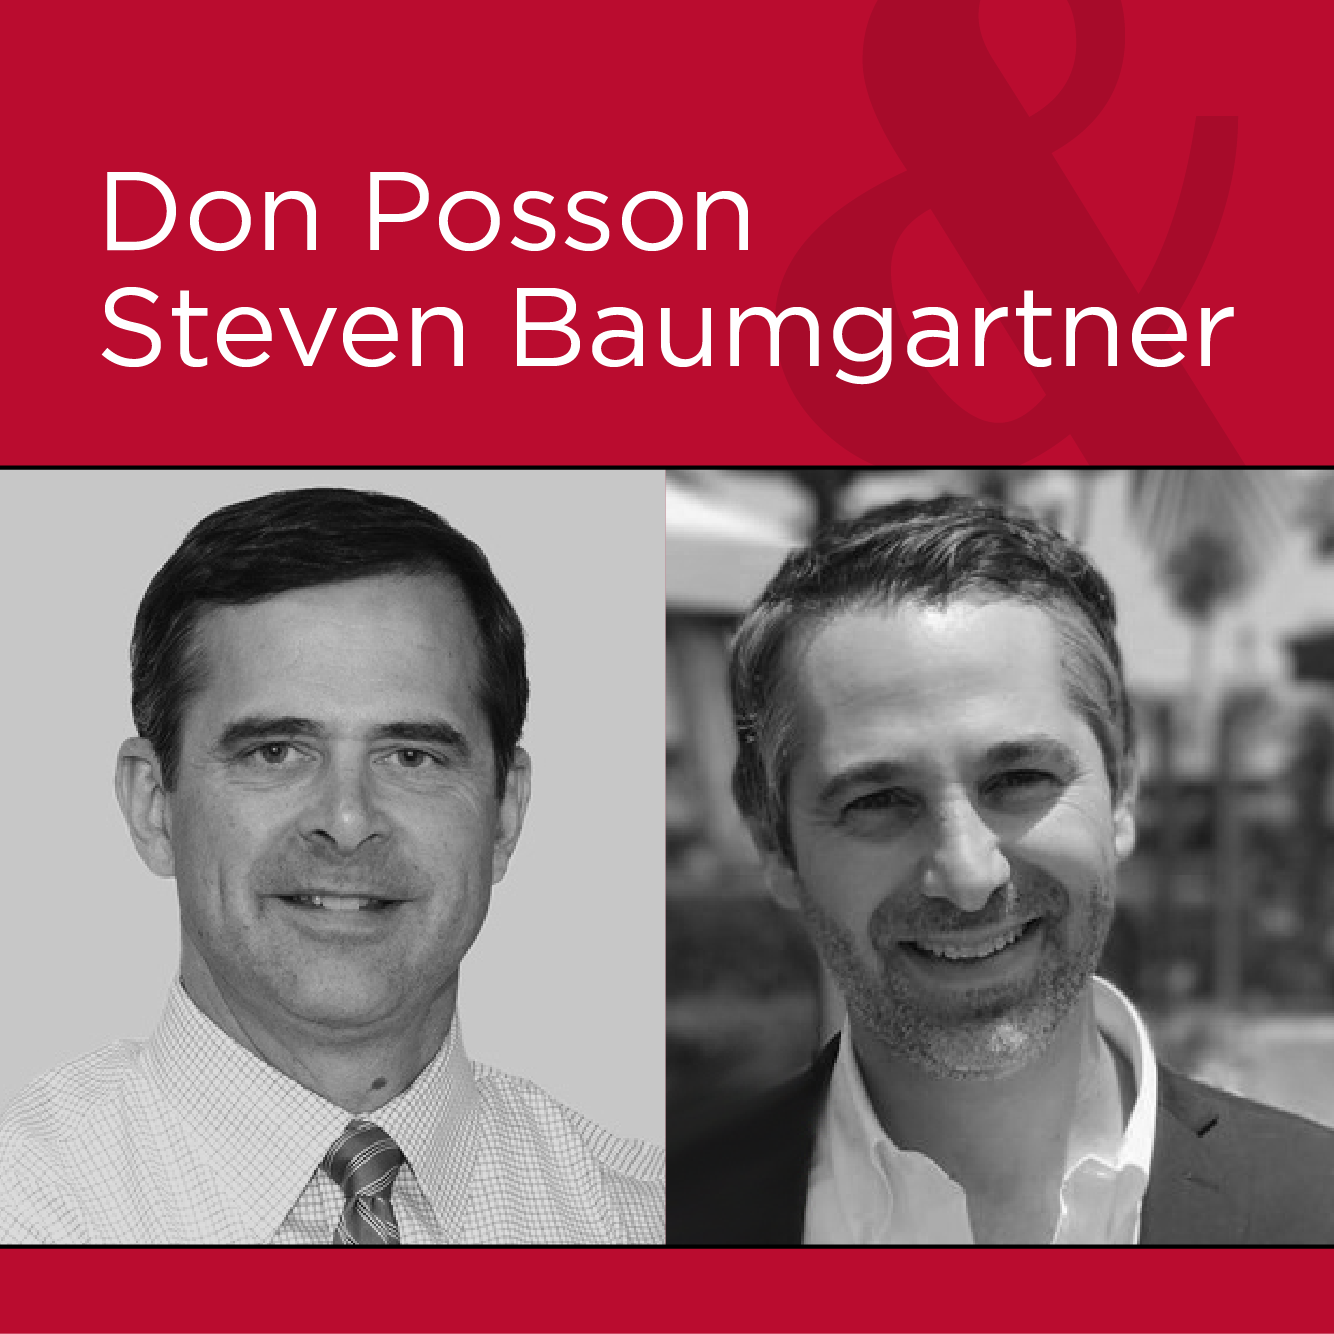 Image of Don Posson and Steven Baumgartner